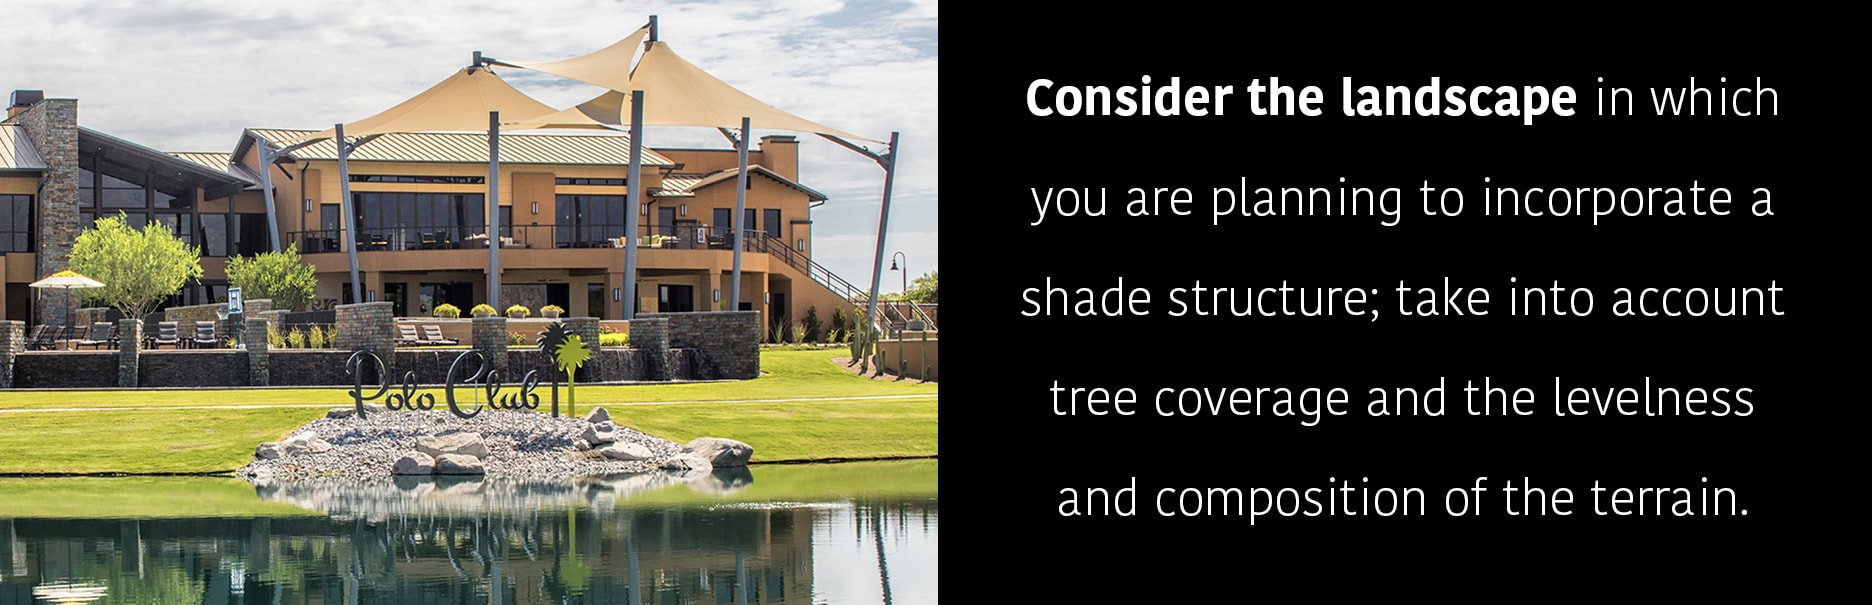 Considering Landscape for Shade Structures